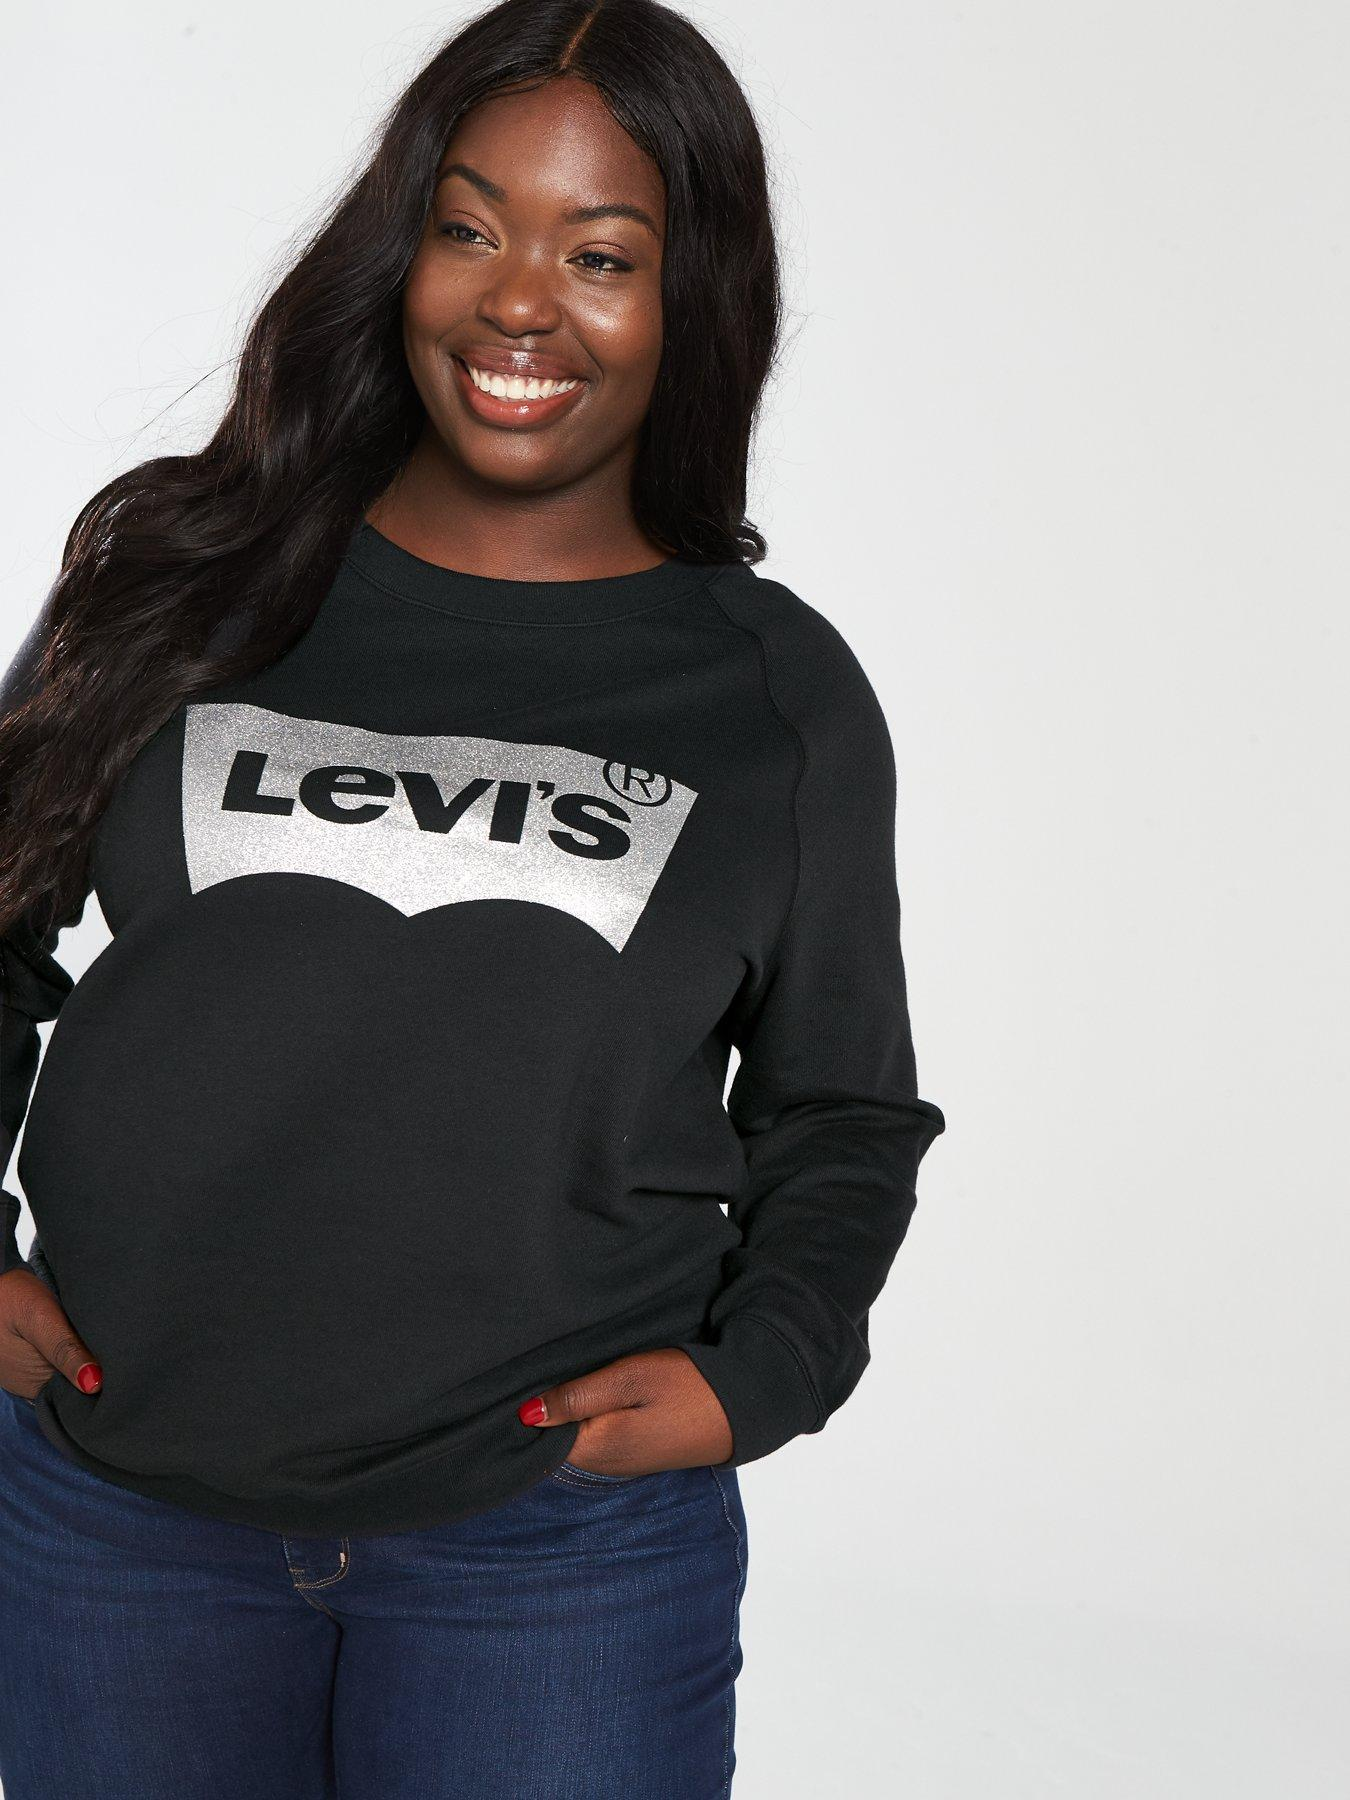 amp; Very uk Levi's co Hoodies Sweatshirts Women 5qwqBIP